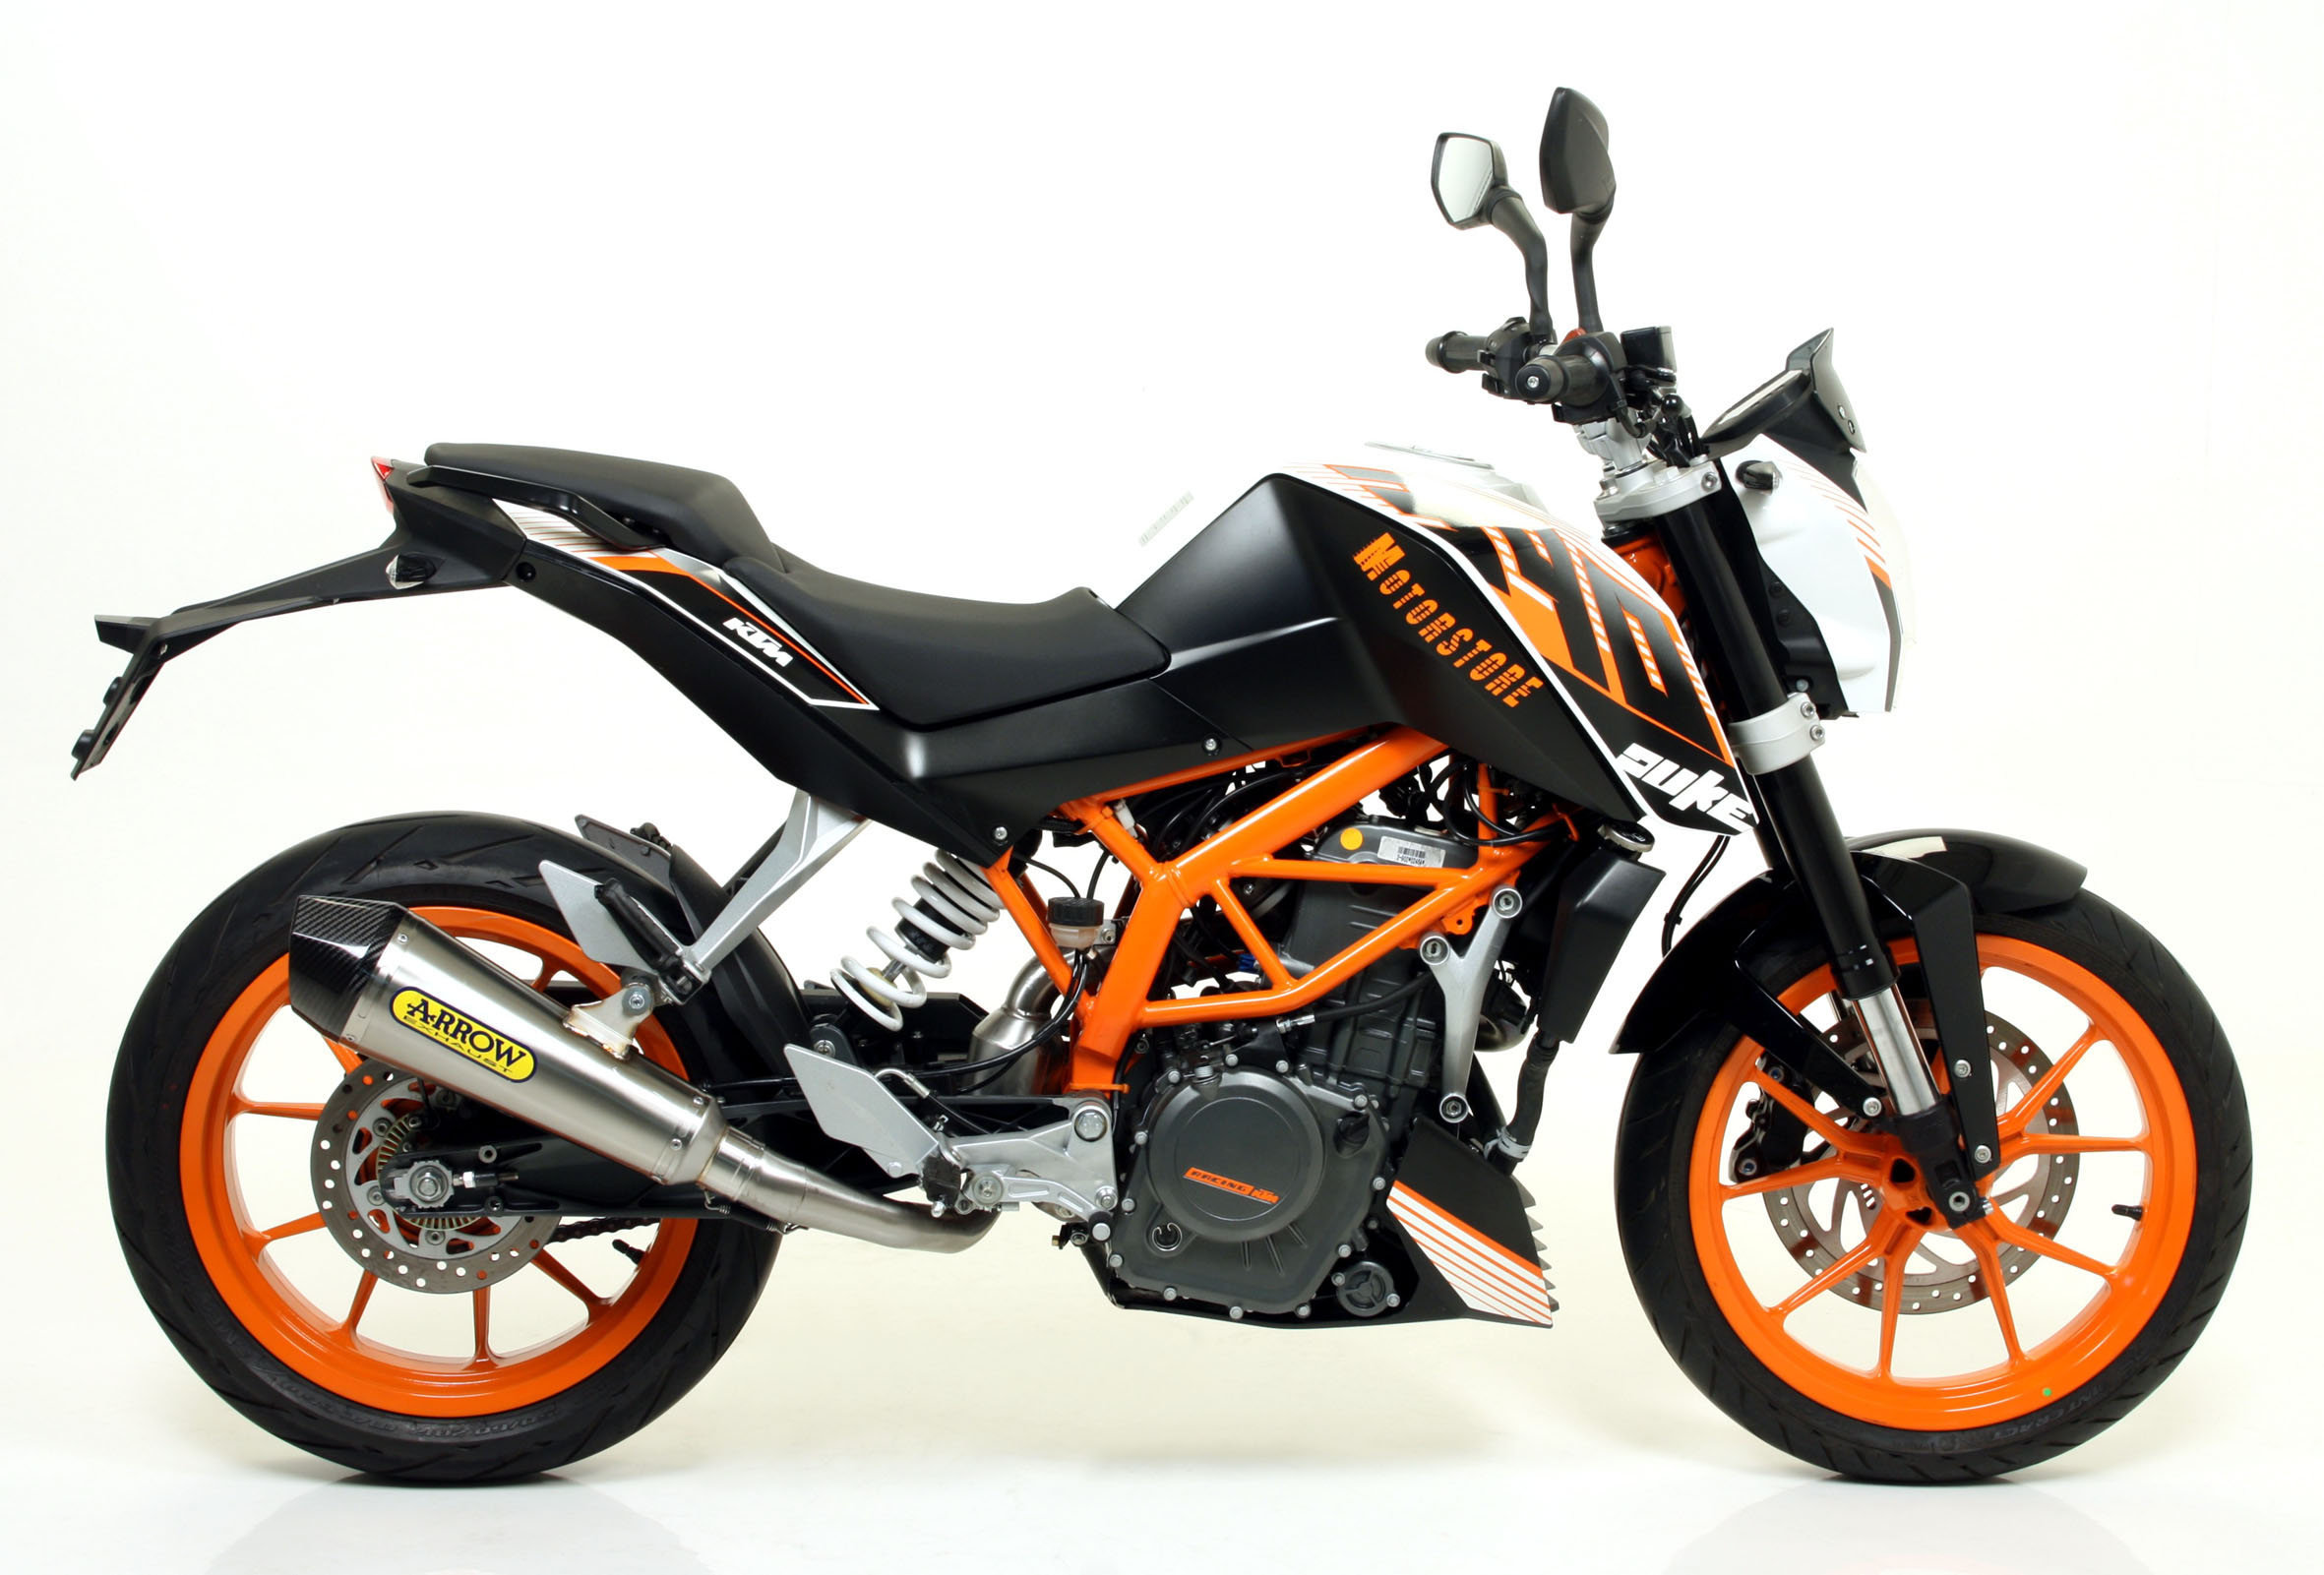 migtec ktm powerparts powerwear duke 125 390. Black Bedroom Furniture Sets. Home Design Ideas